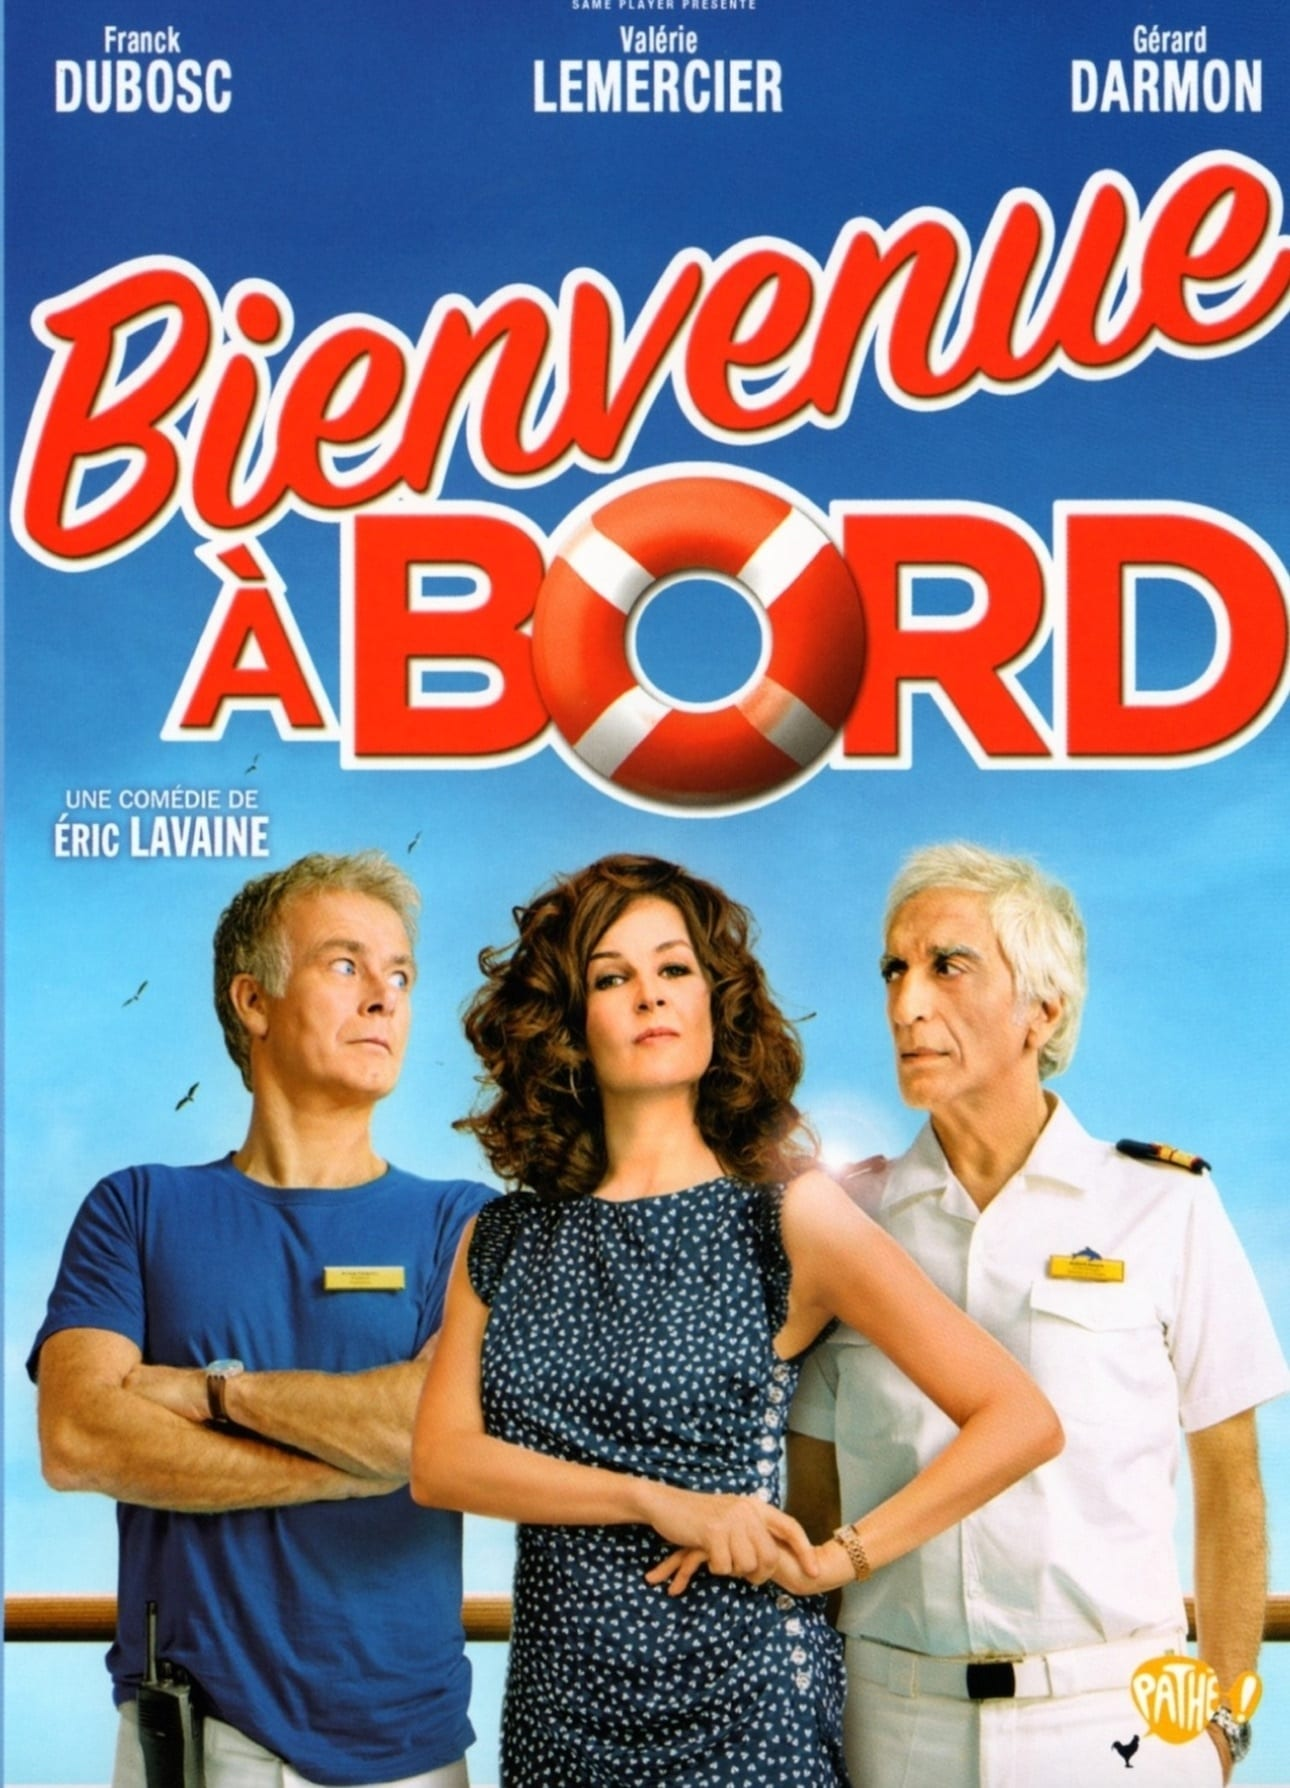 Welcome Aboard (2011)